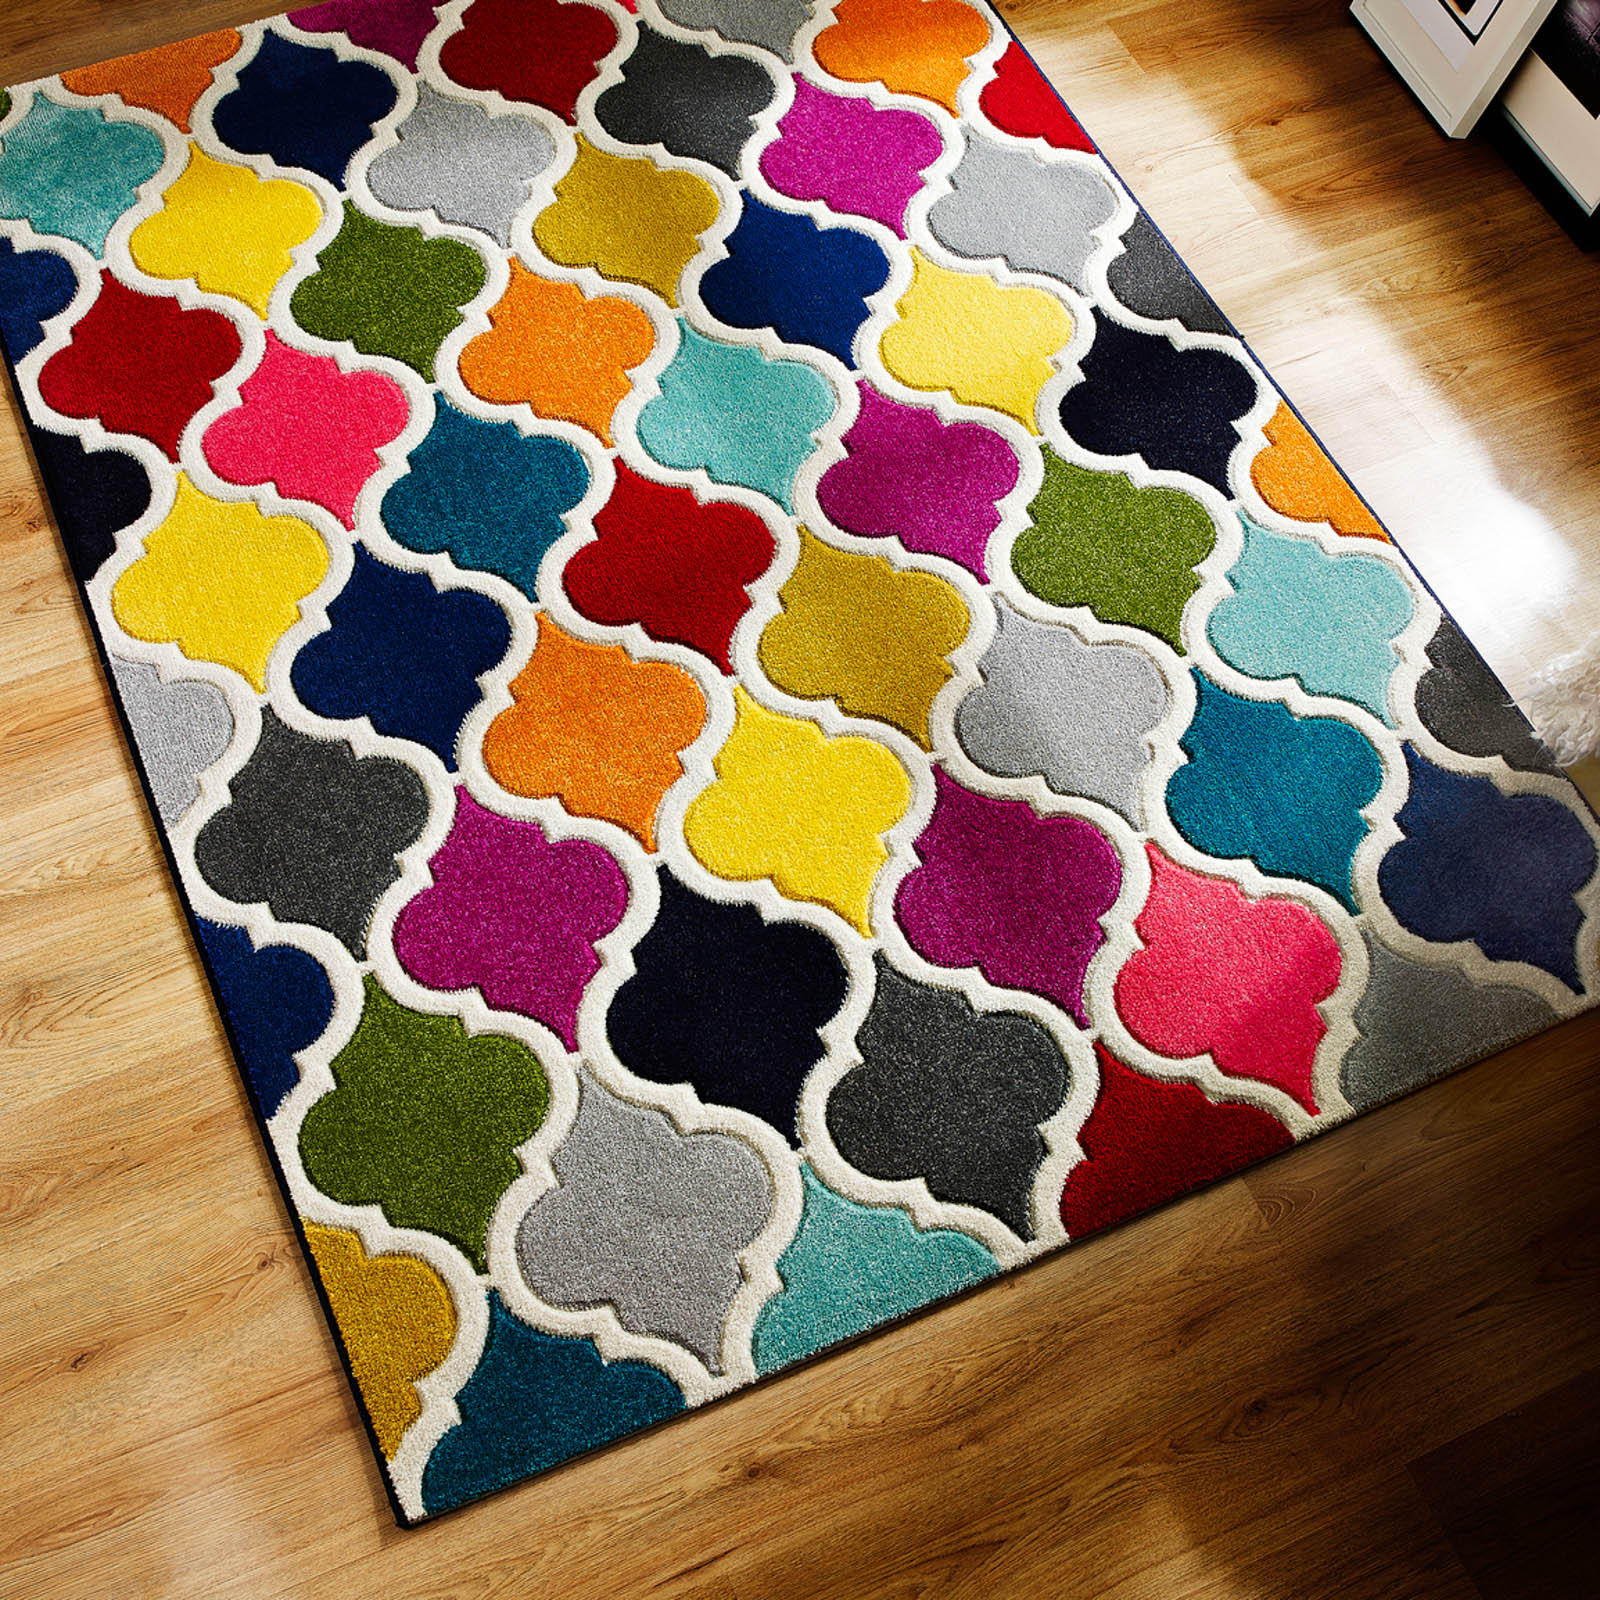 Limbo Multicoloured rug from the rug seller